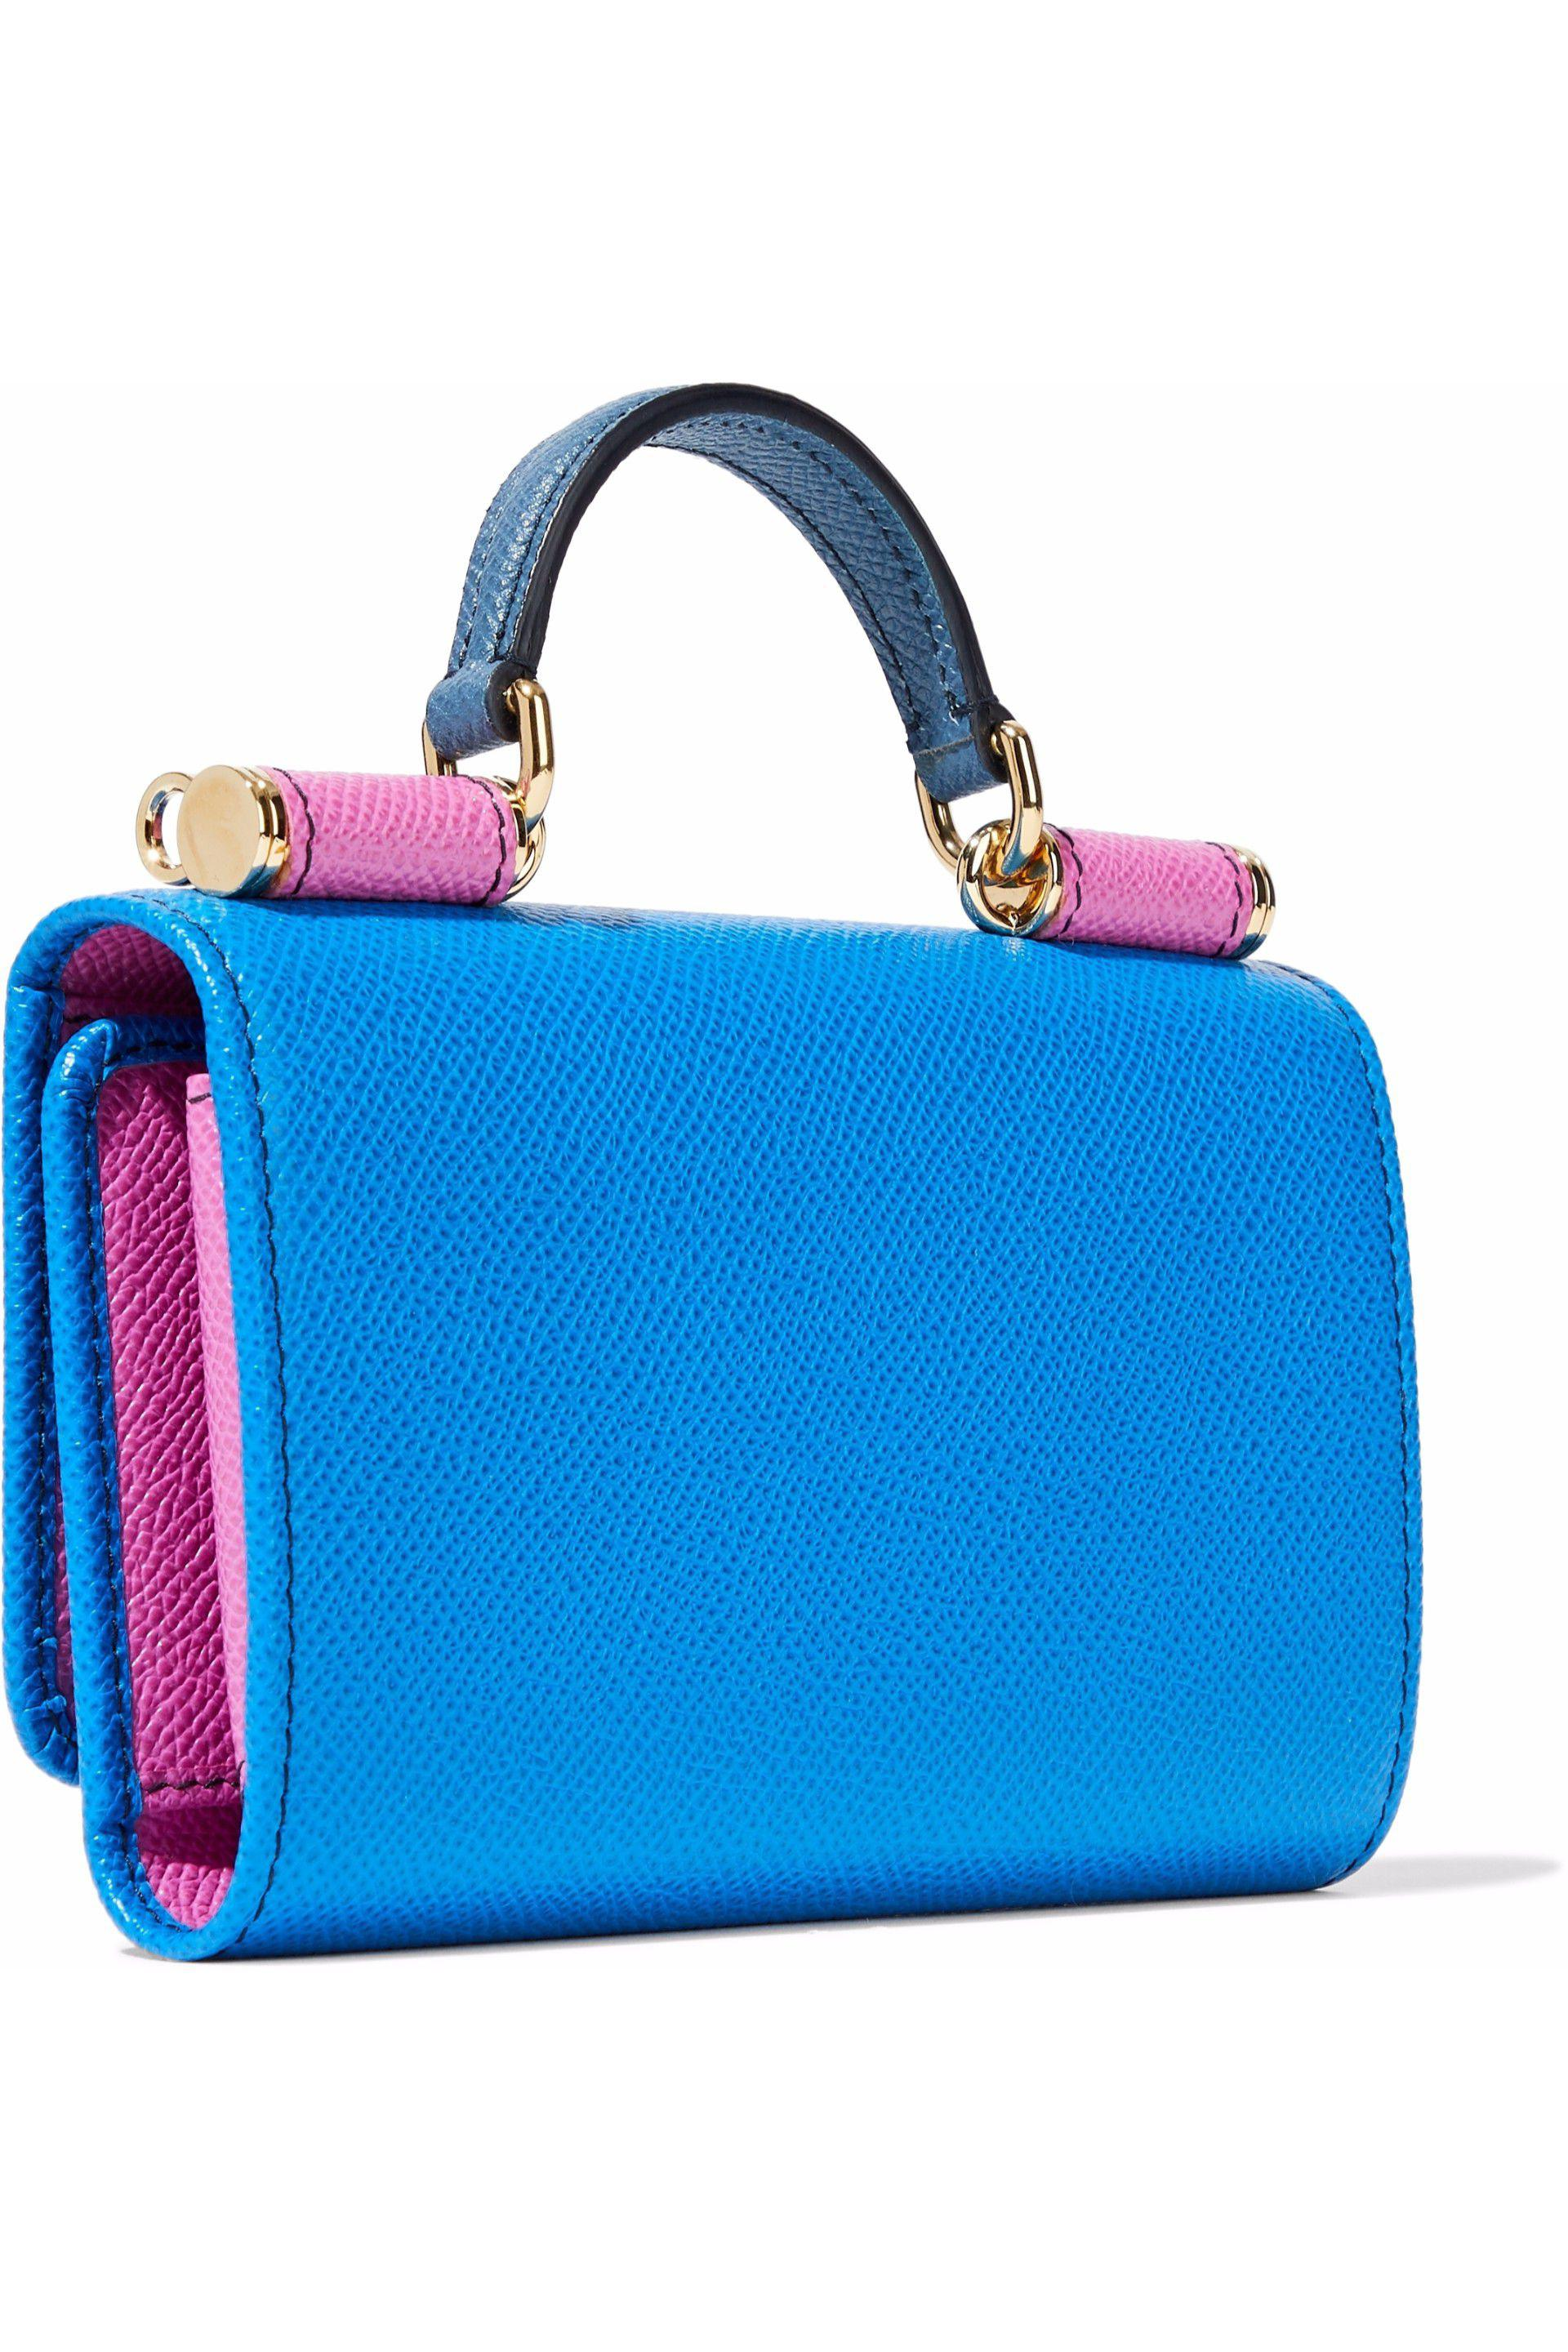 30e50854f7 Dolce & Gabbana Von Color-block Textured-leather Phone Case in Blue ...